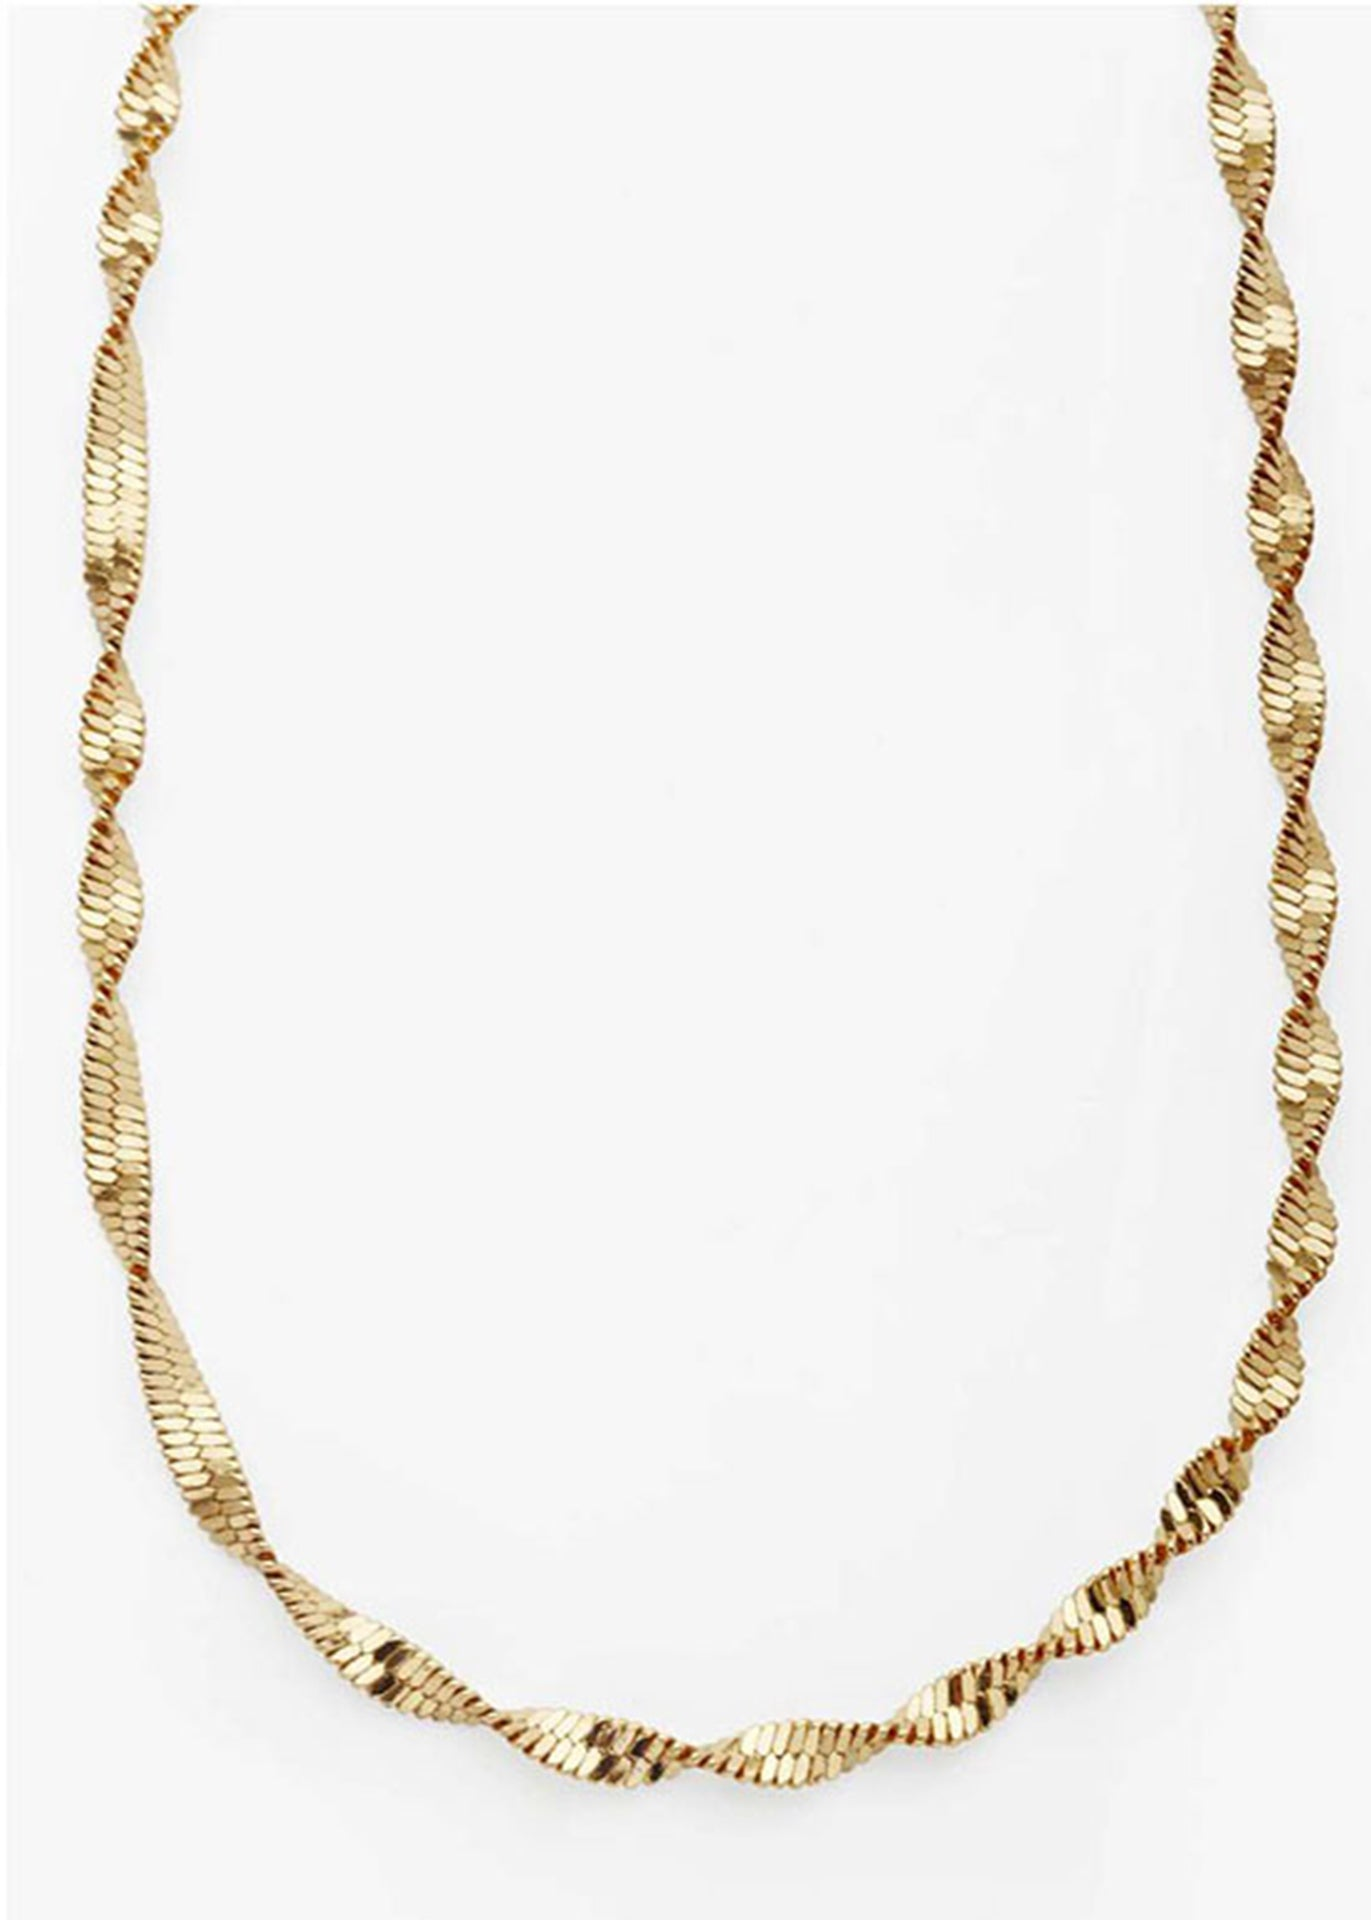 Juilette Twist 18K Gold Plated Necklace